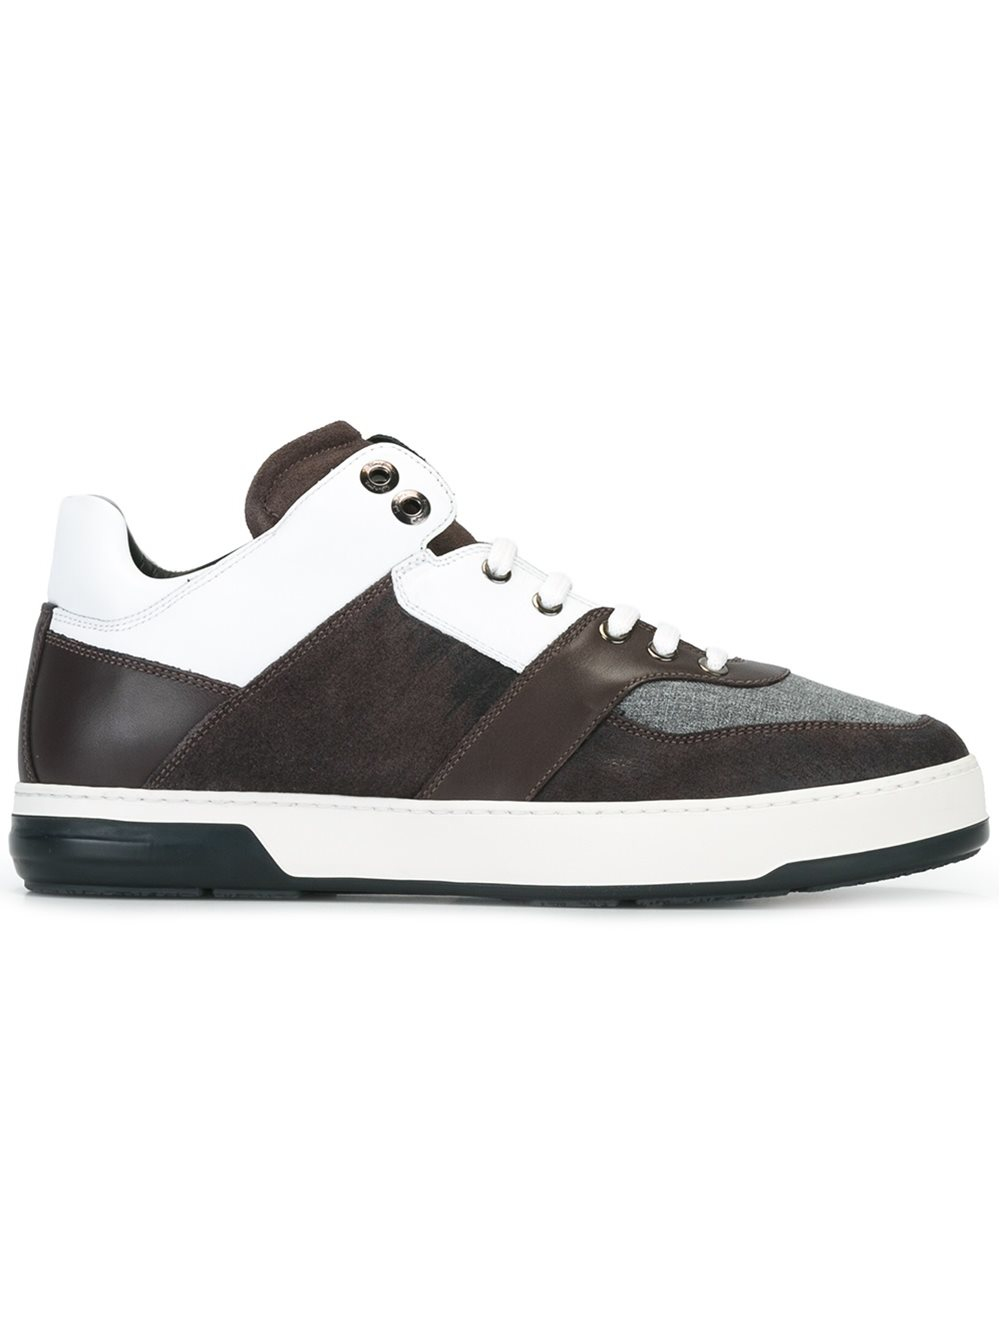 ferragamo panelled sneakers leather rubber 6